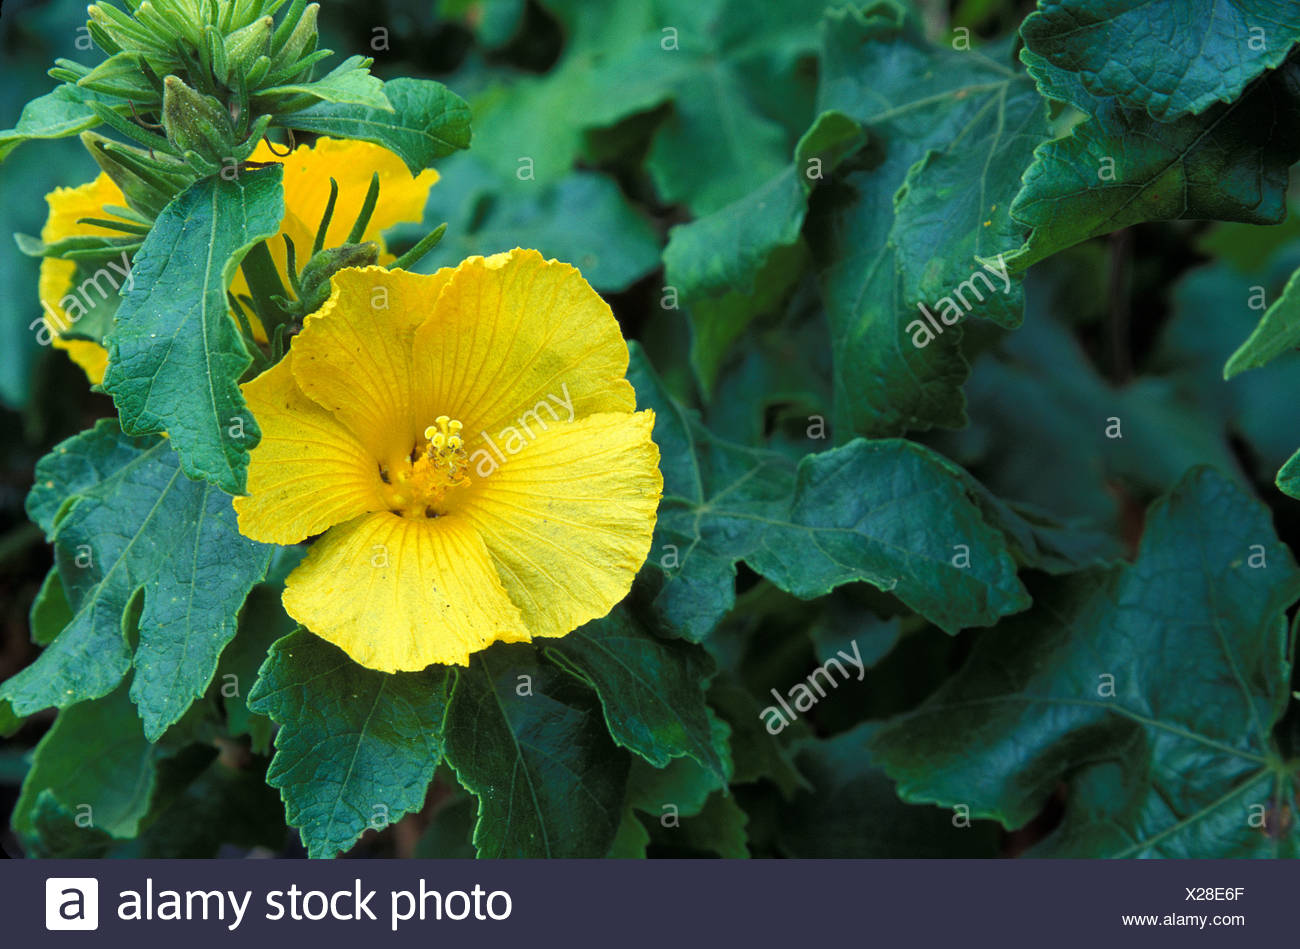 The hawaii state flower the yellow hibiscus brackenridgii the hawaii state flower the yellow hibiscus brackenridgii surrounded by green leaves izmirmasajfo